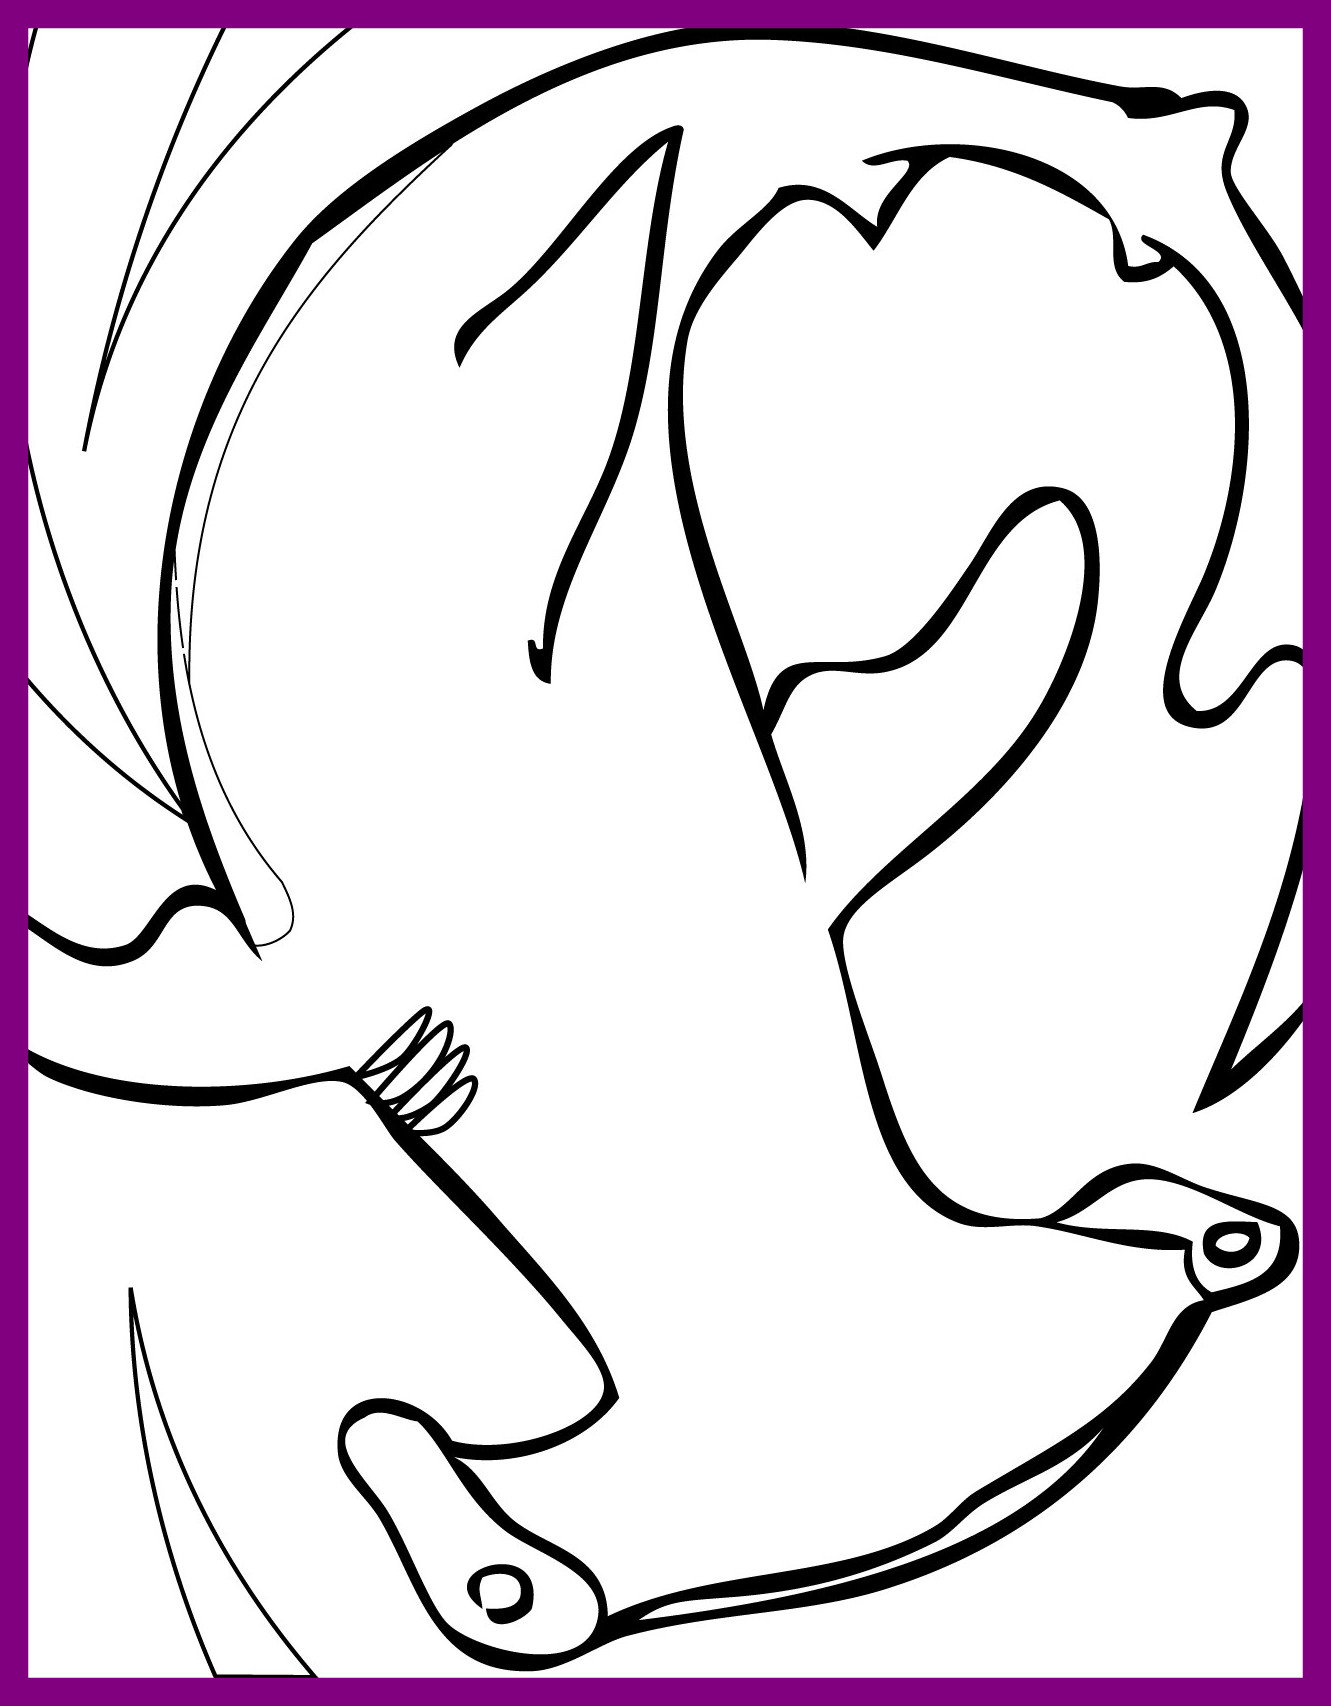 1331x1706 Hammerhead Shark Coloring Pages